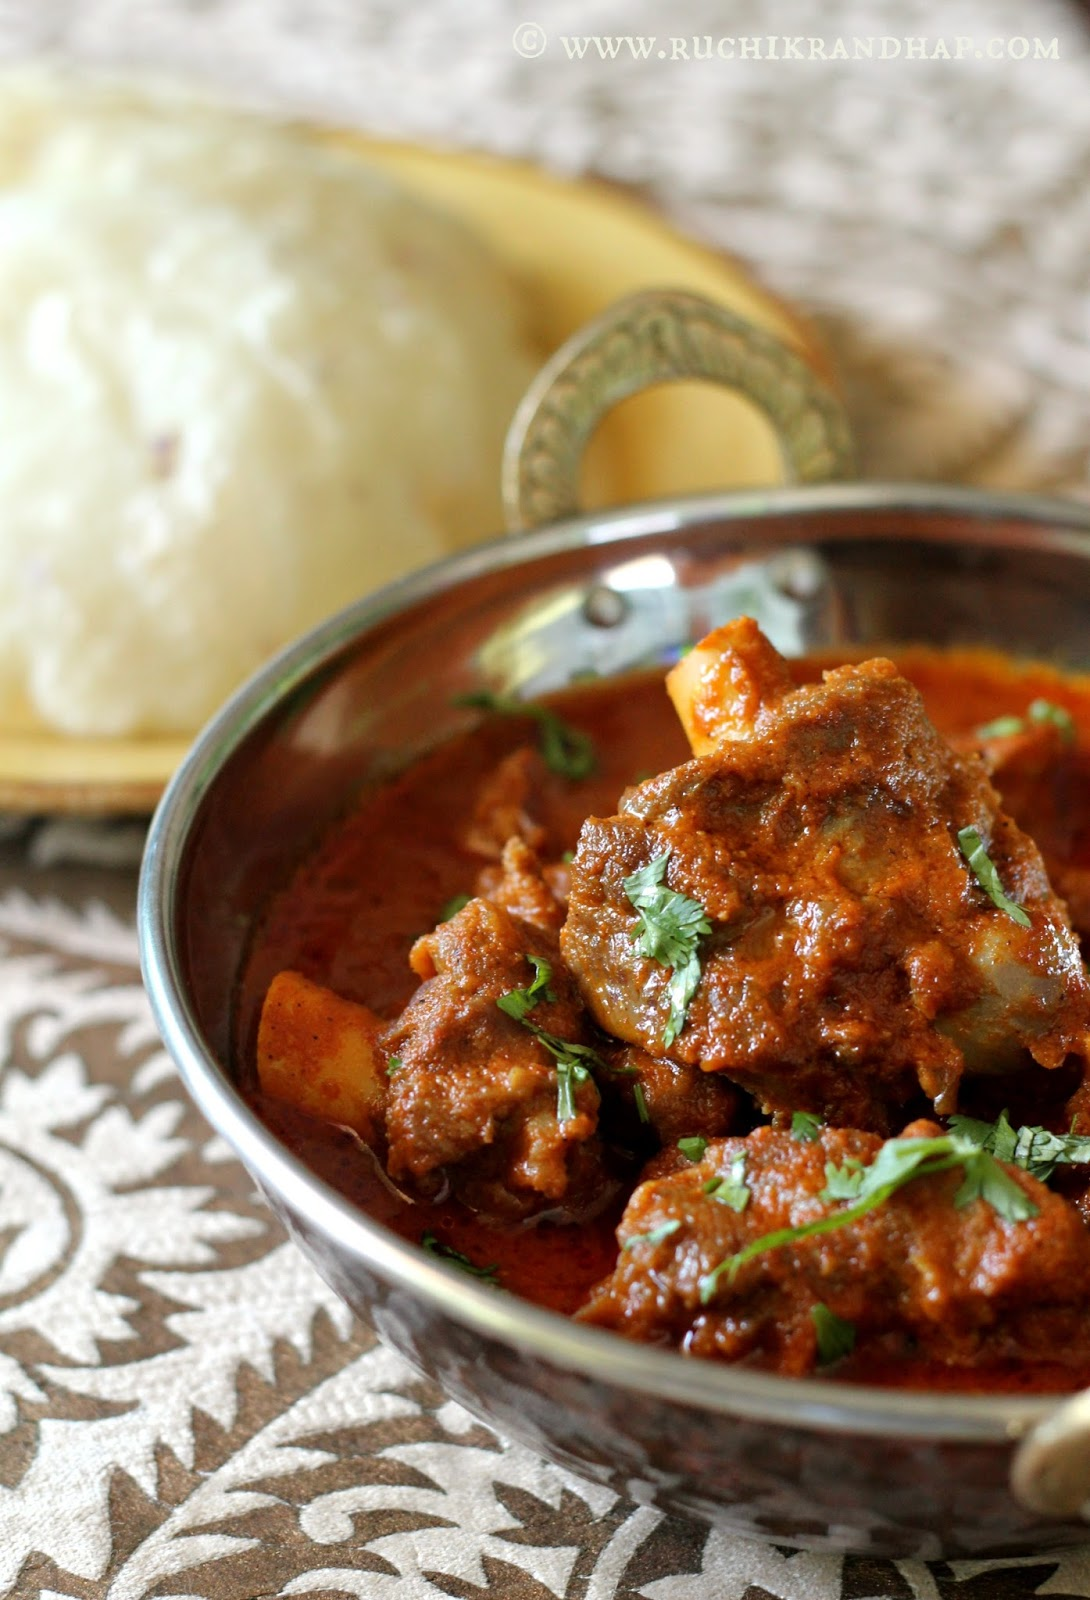 Malvani mutton curry ruchik randhap i found this recipe which i tried a few weeks ago in sanjeev kapoors book khazana of indian recipes an old copy that i received as a wedding gift forumfinder Images